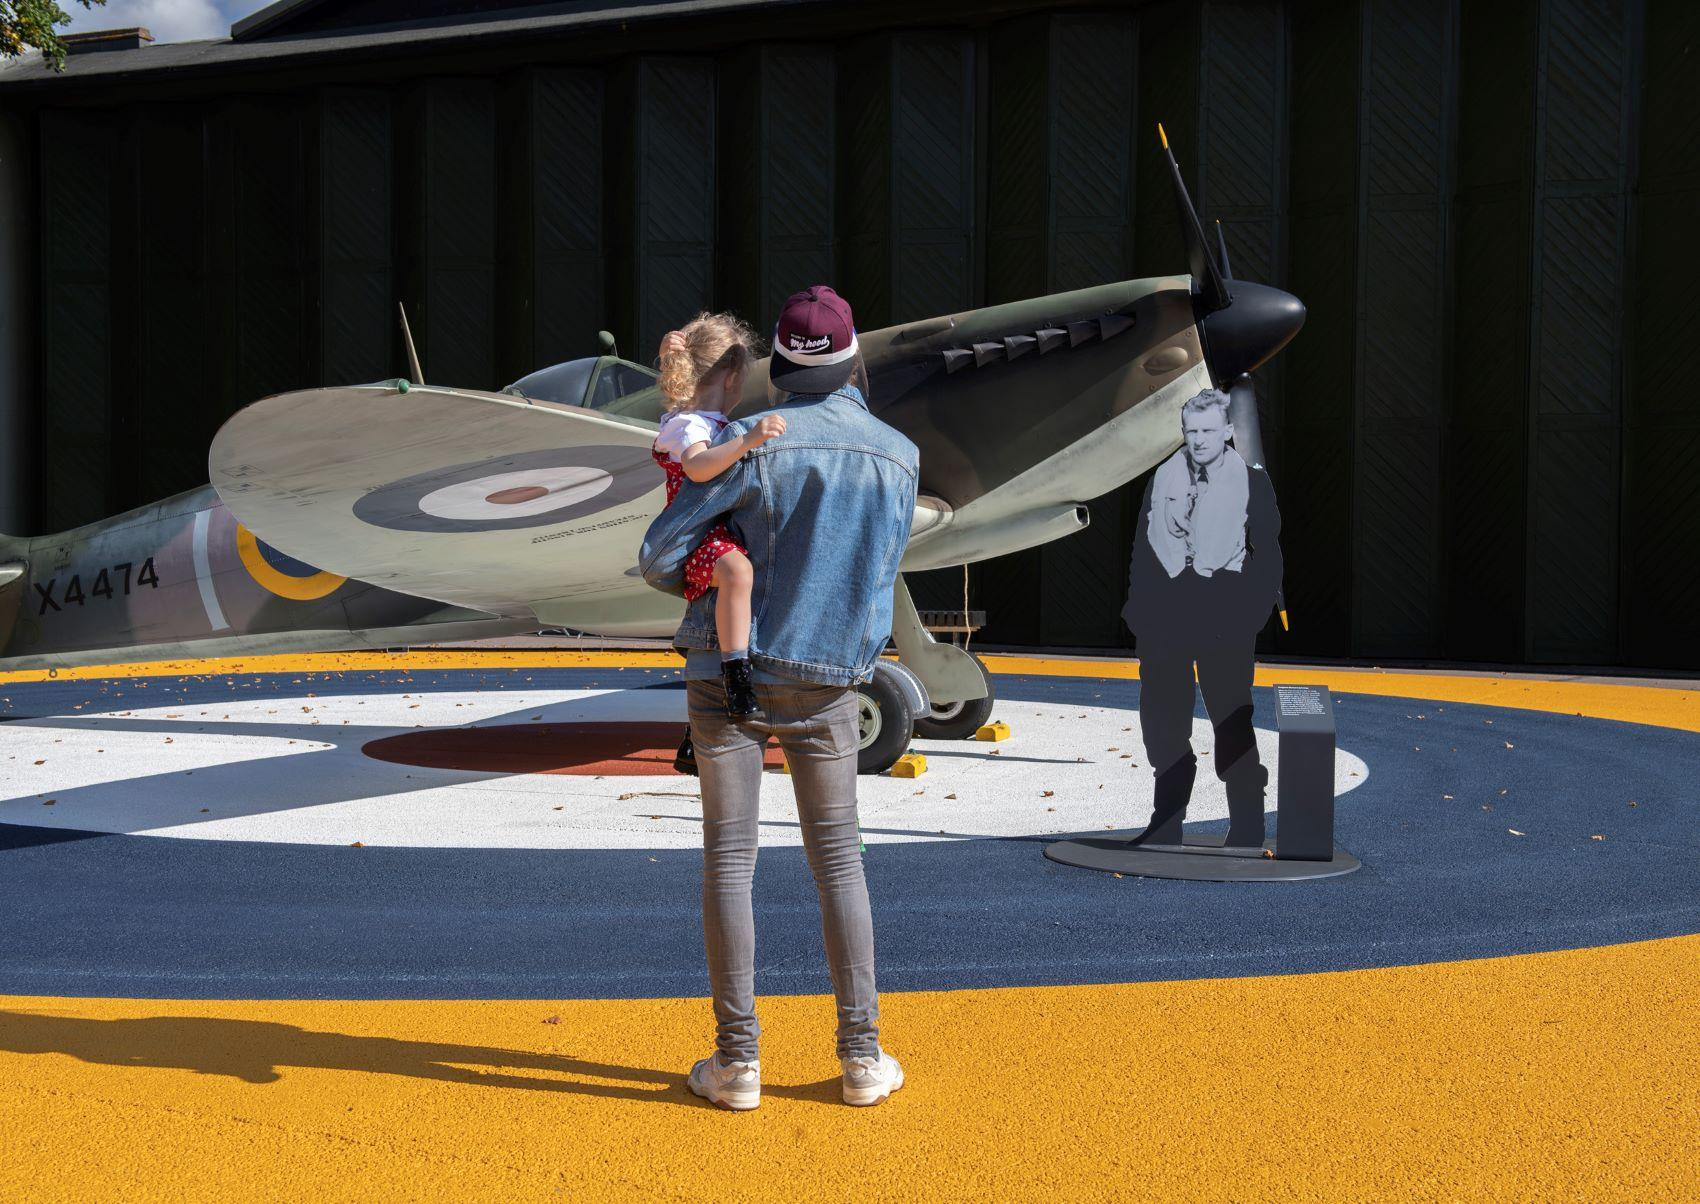 Visitors stand next to a Spitfire display at IWM Duxford